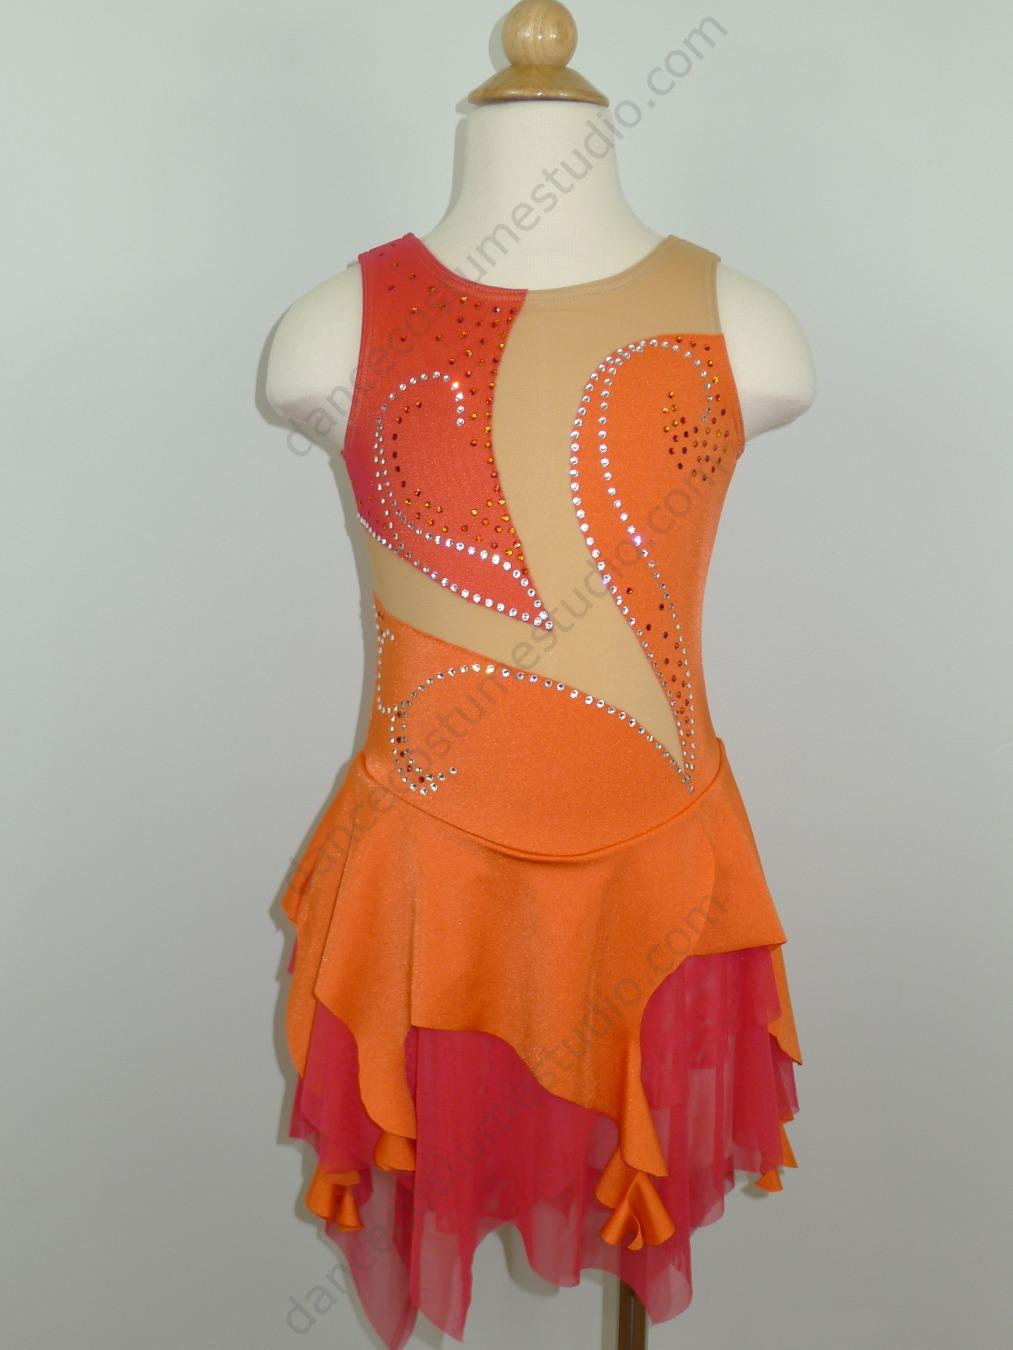 Figure Skating Dresses - Performing Outfit Design Studio